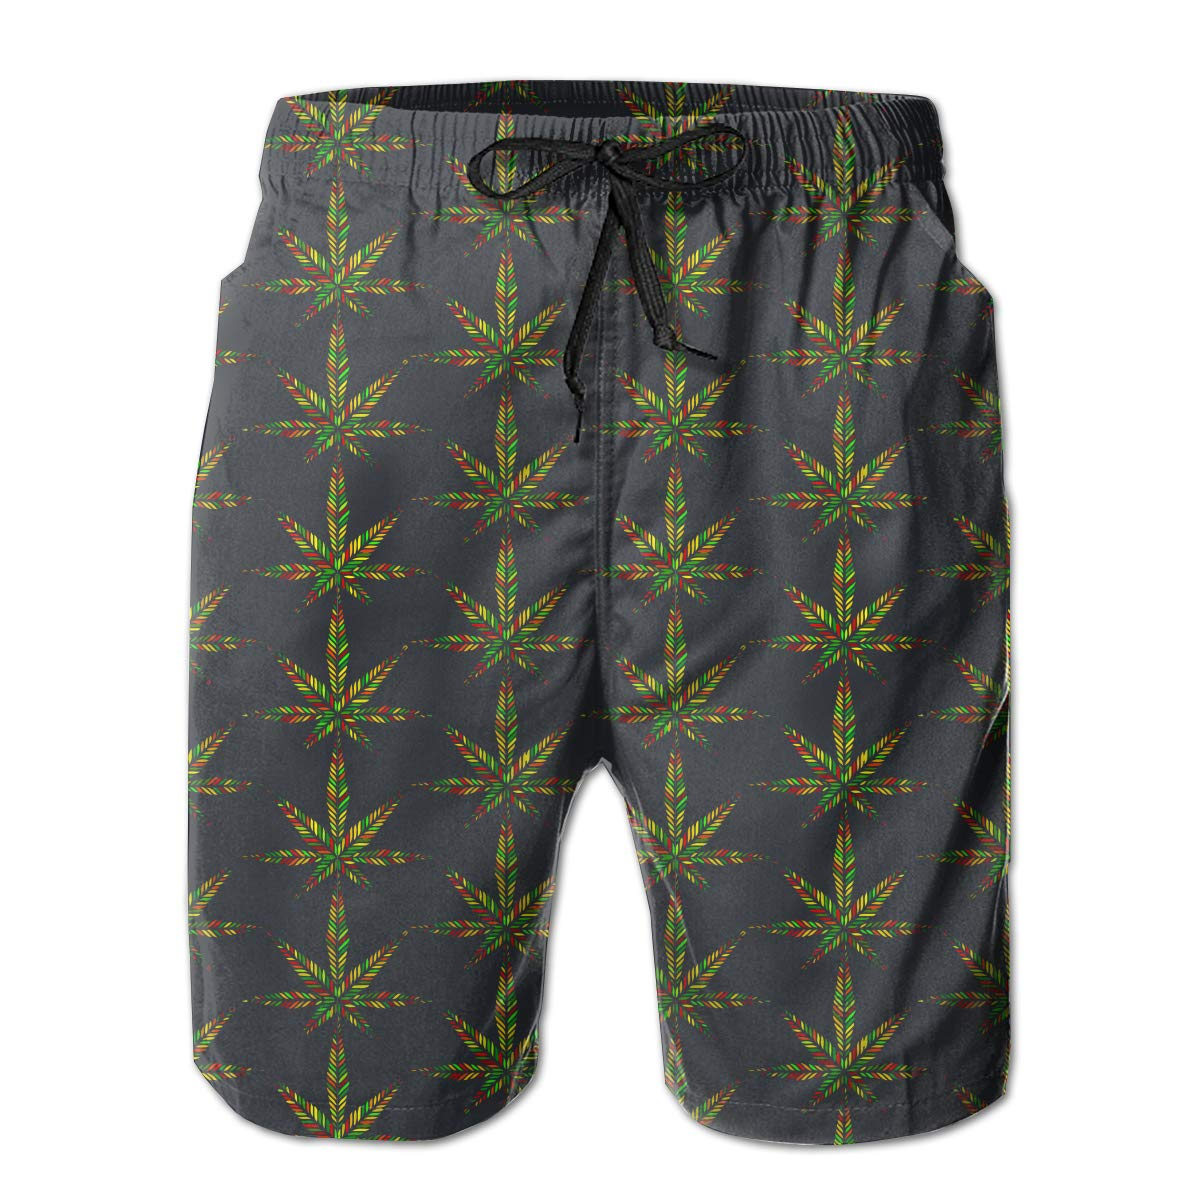 MikonsuRasta Colorful Marijuana Leaf Weeds Mens Swim Trunks Quick Dry Bathing Suits Beach Holiday Party Board Shorts White